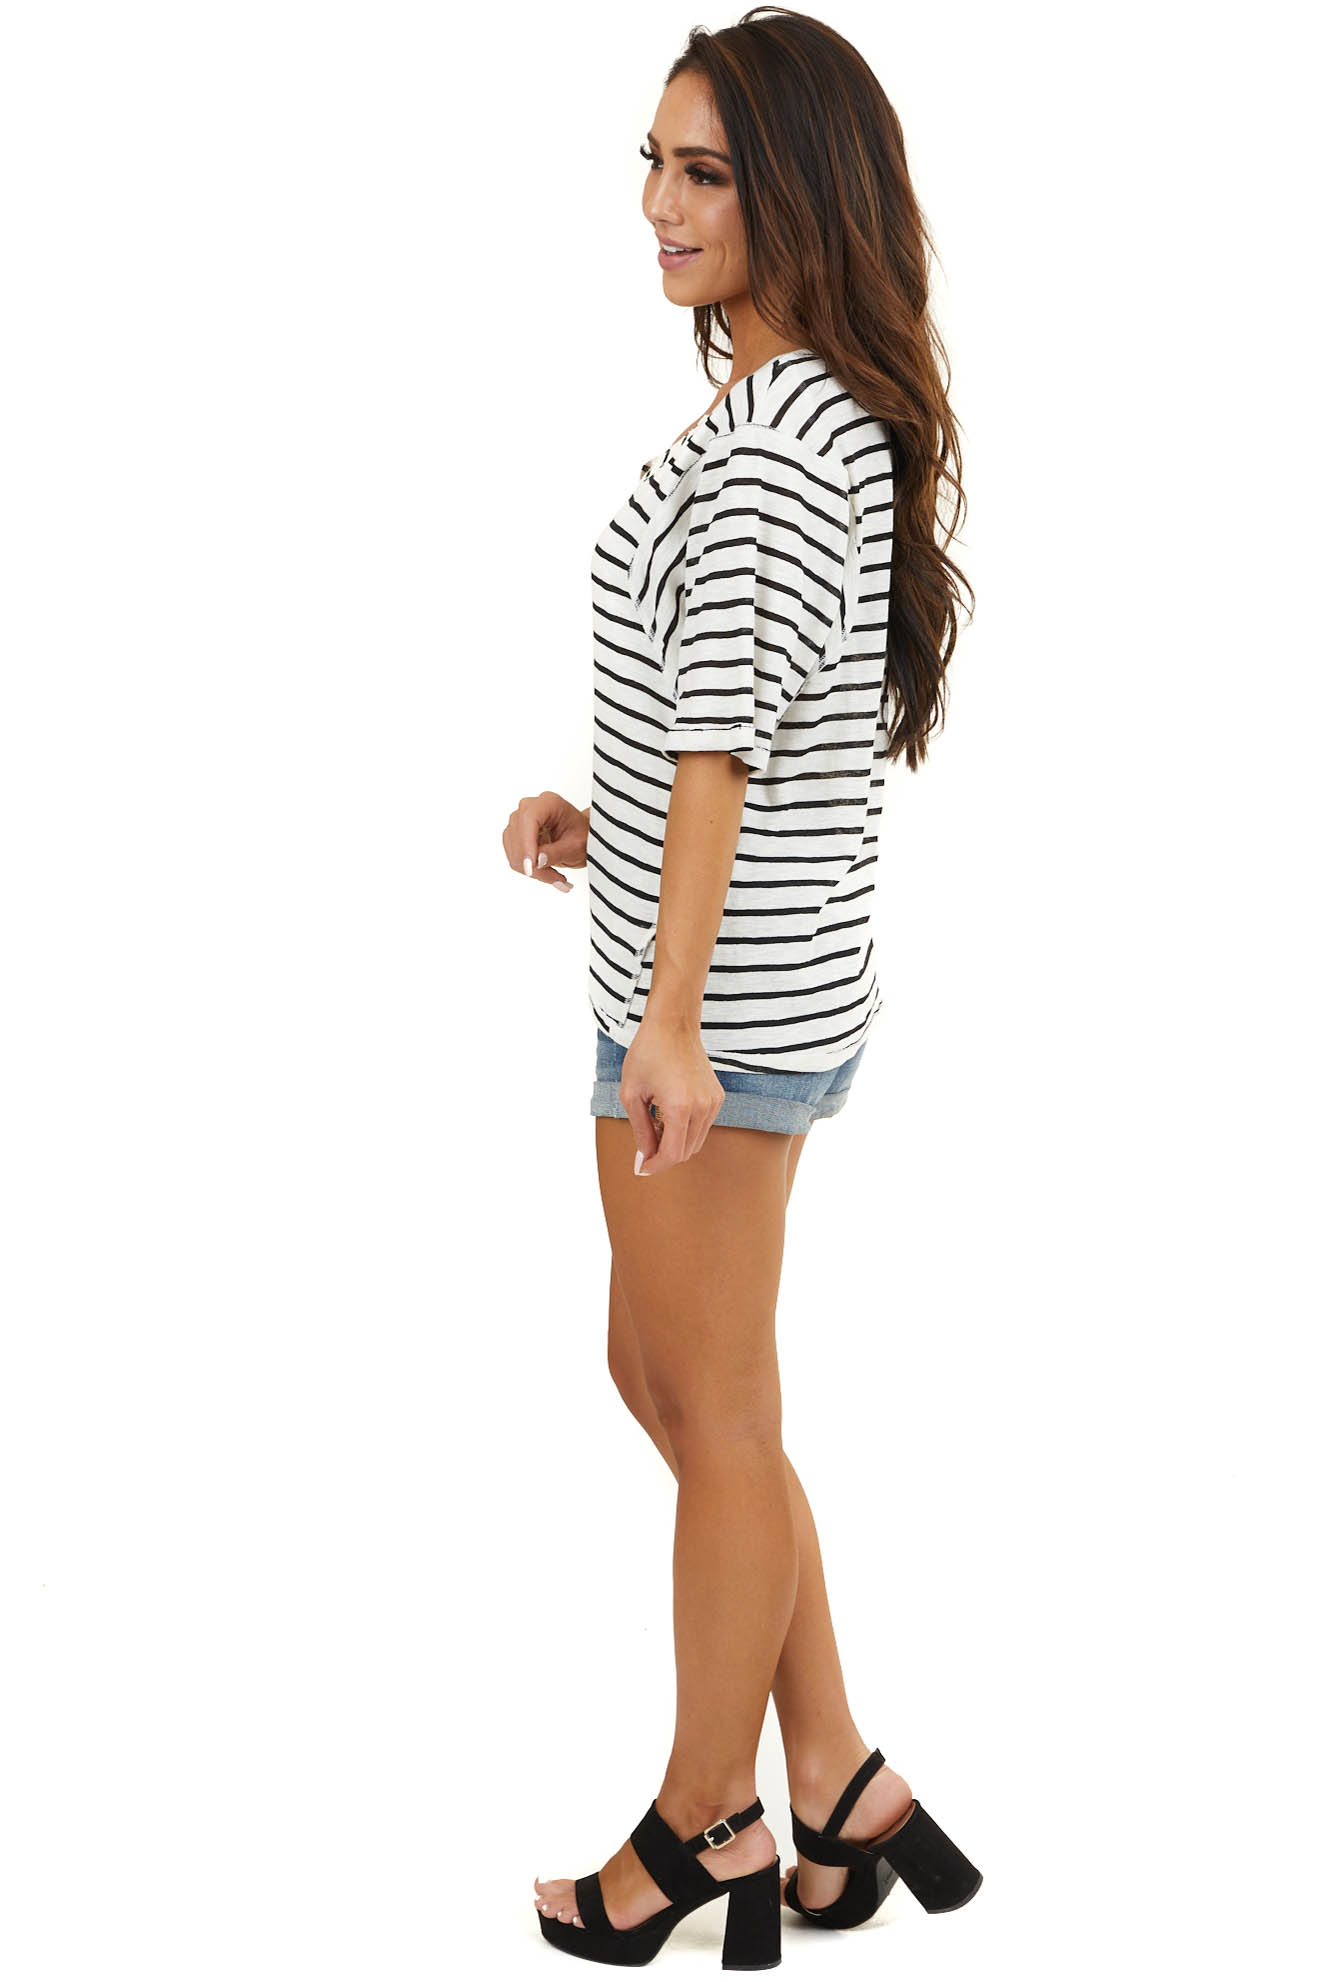 Ivory and Black Striped Short Sleeve Top with V Neckline